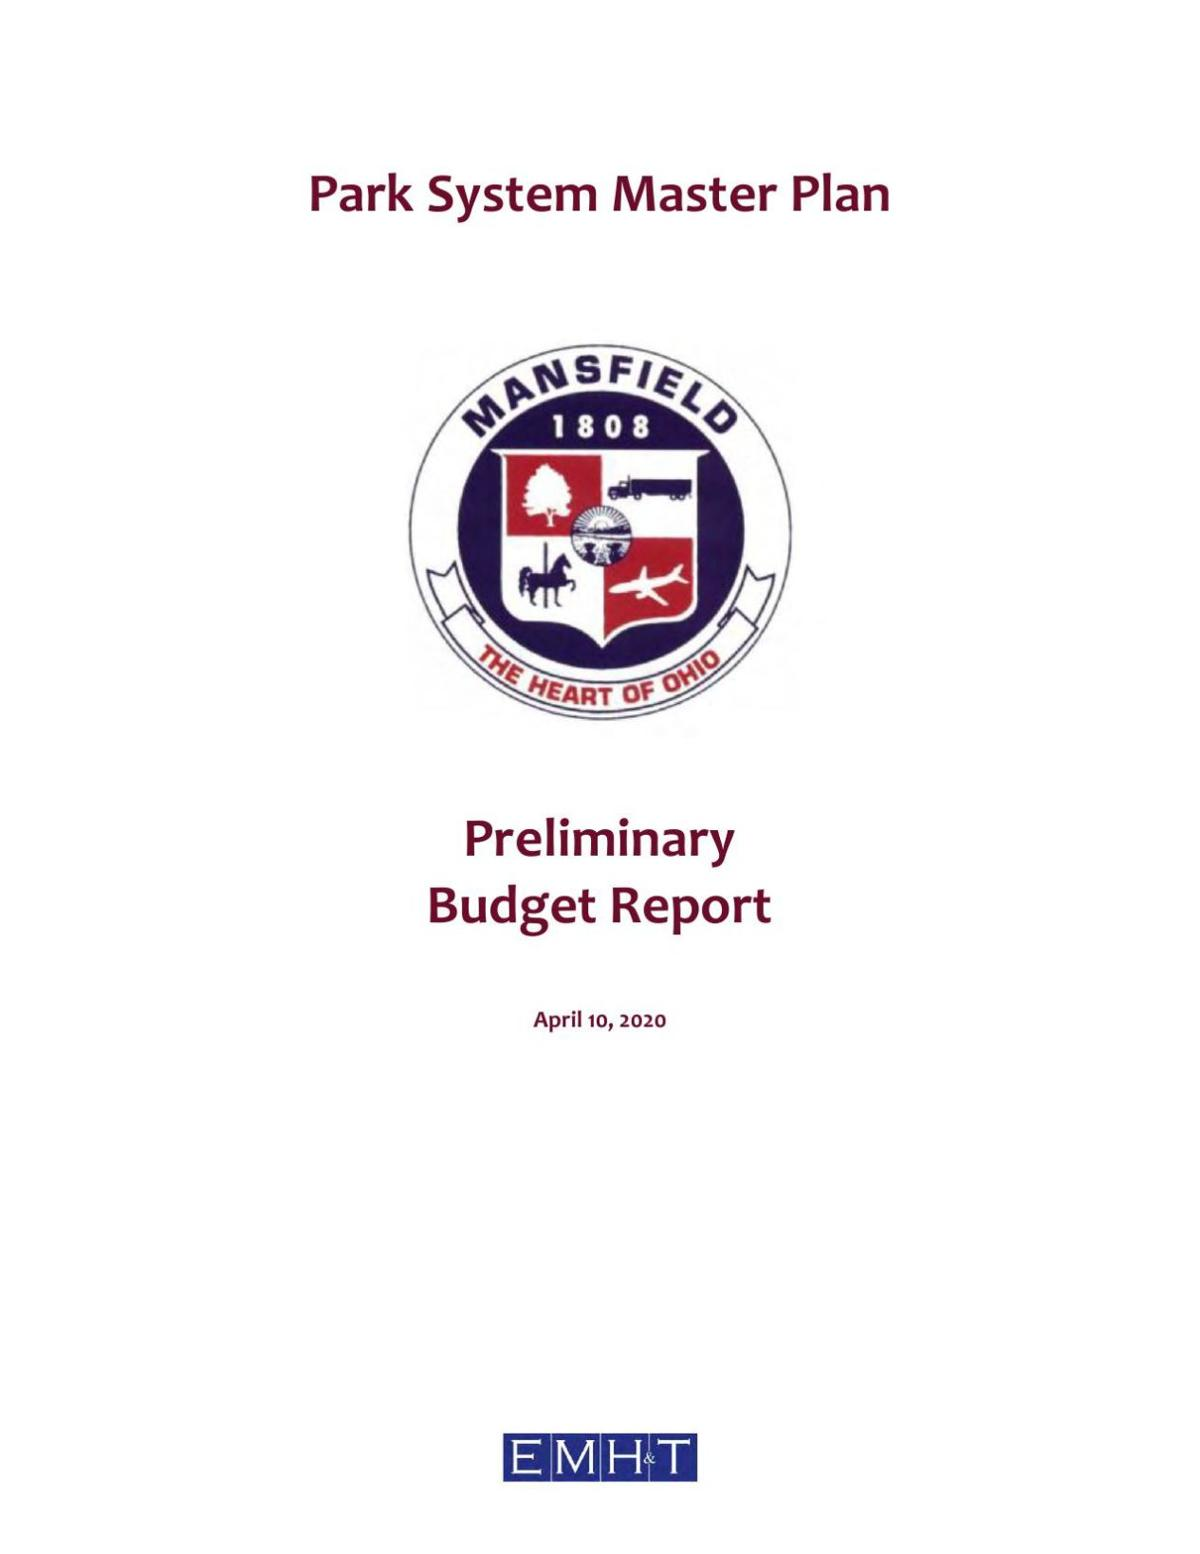 Mansfield City Parks master plan budget proposal draft